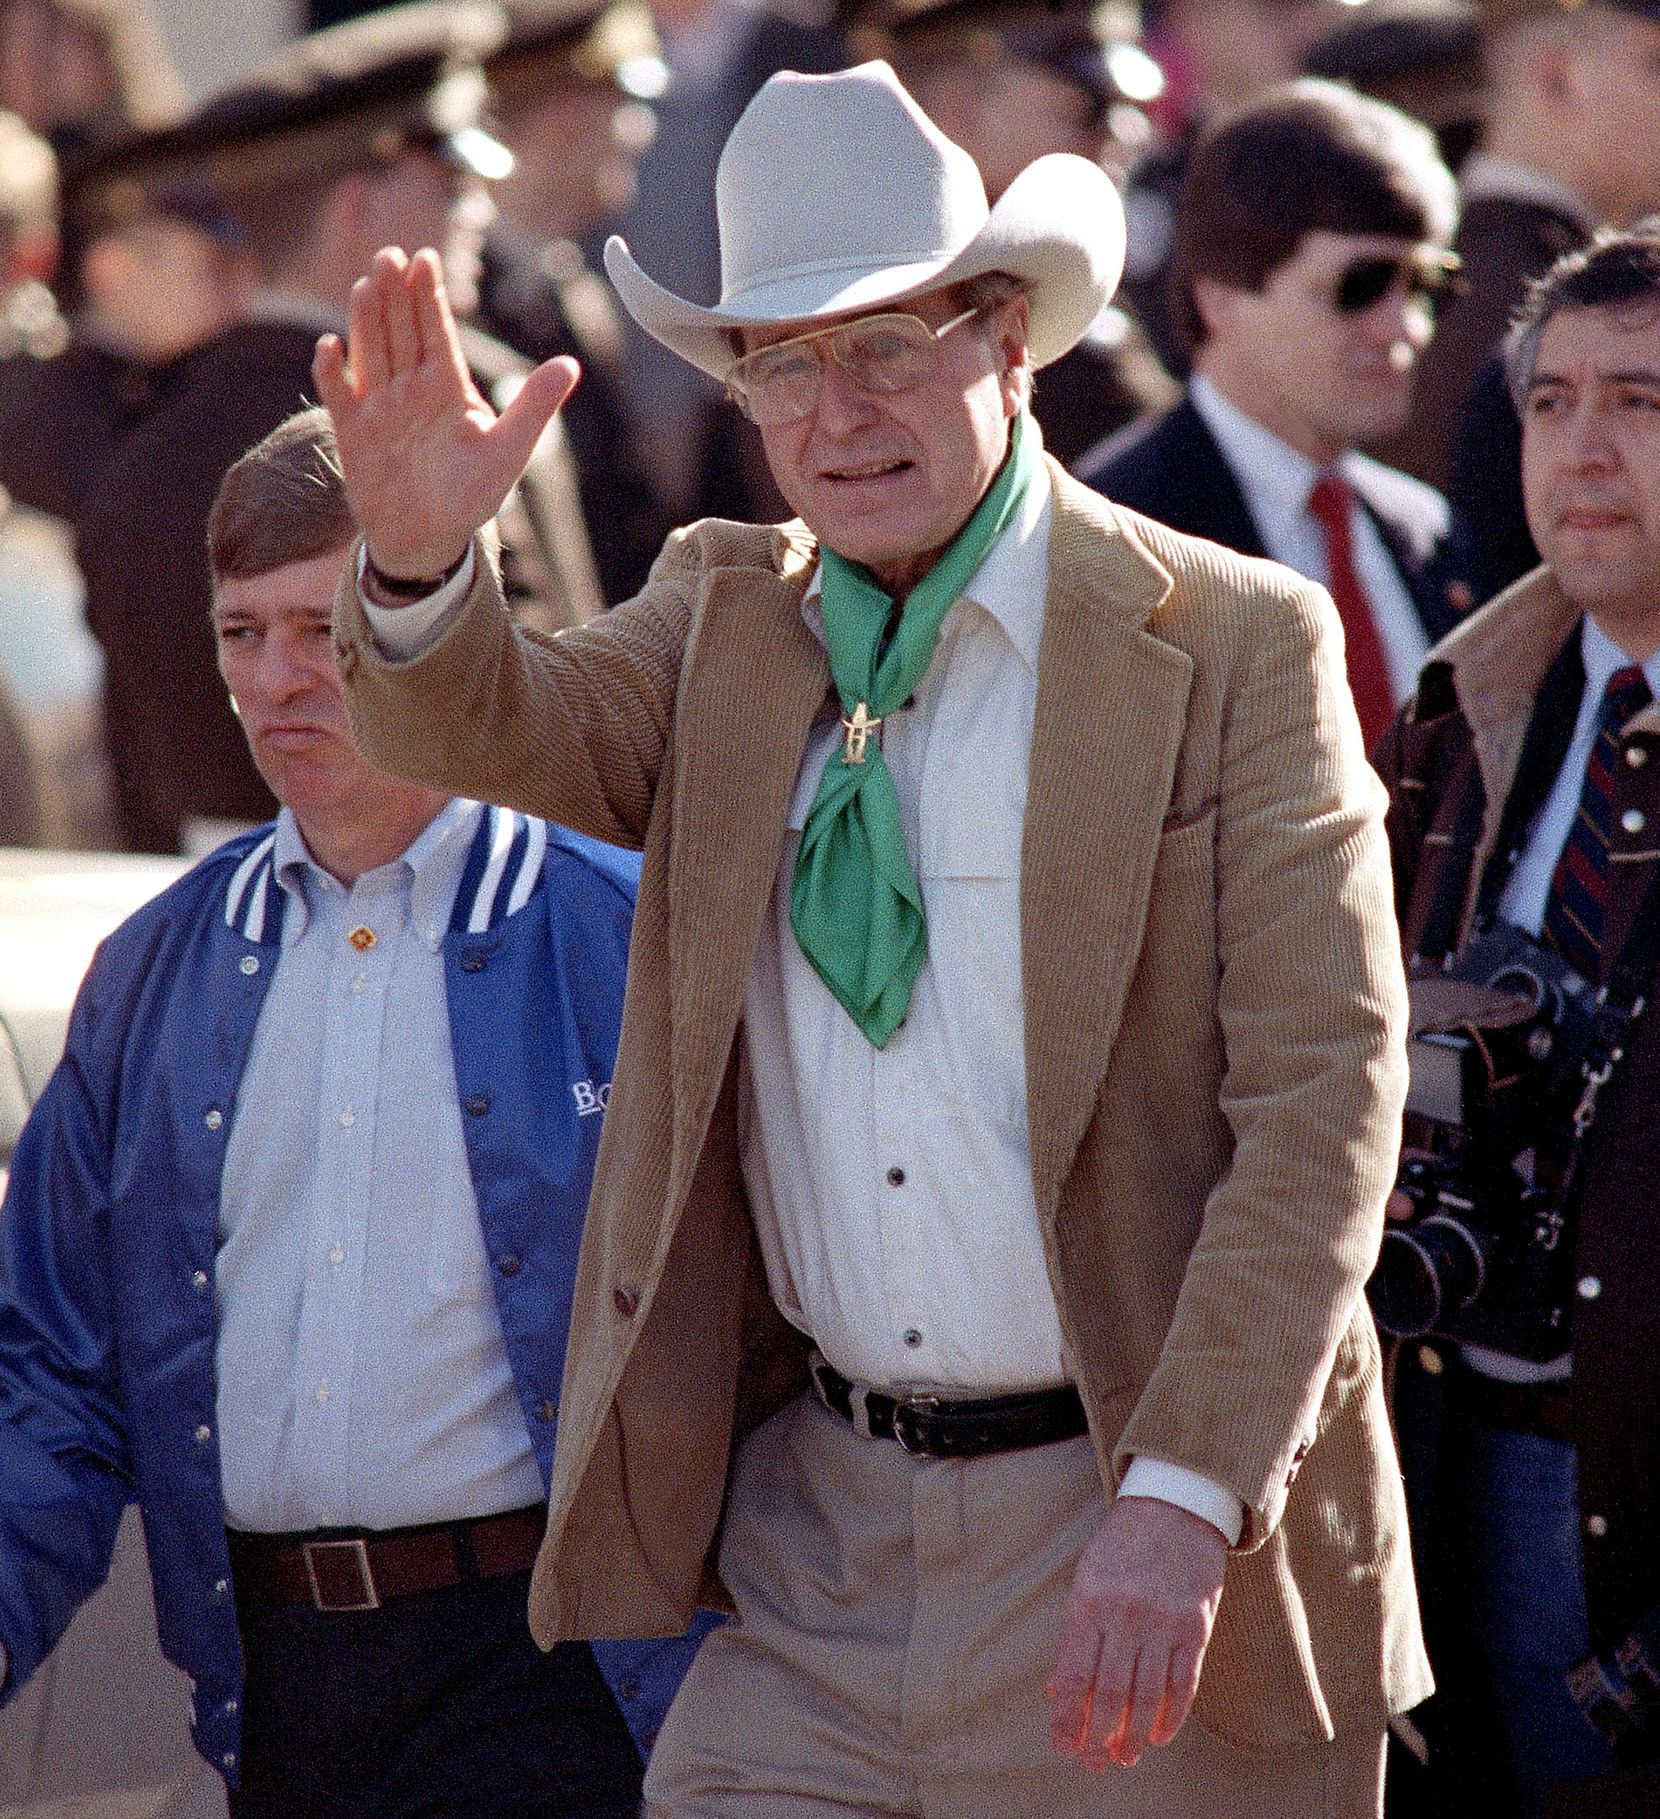 Then-Vice President George H.W. Bush was in Houston on Feb. 20, 1988, to participate in the Houston Rodeo Parade.